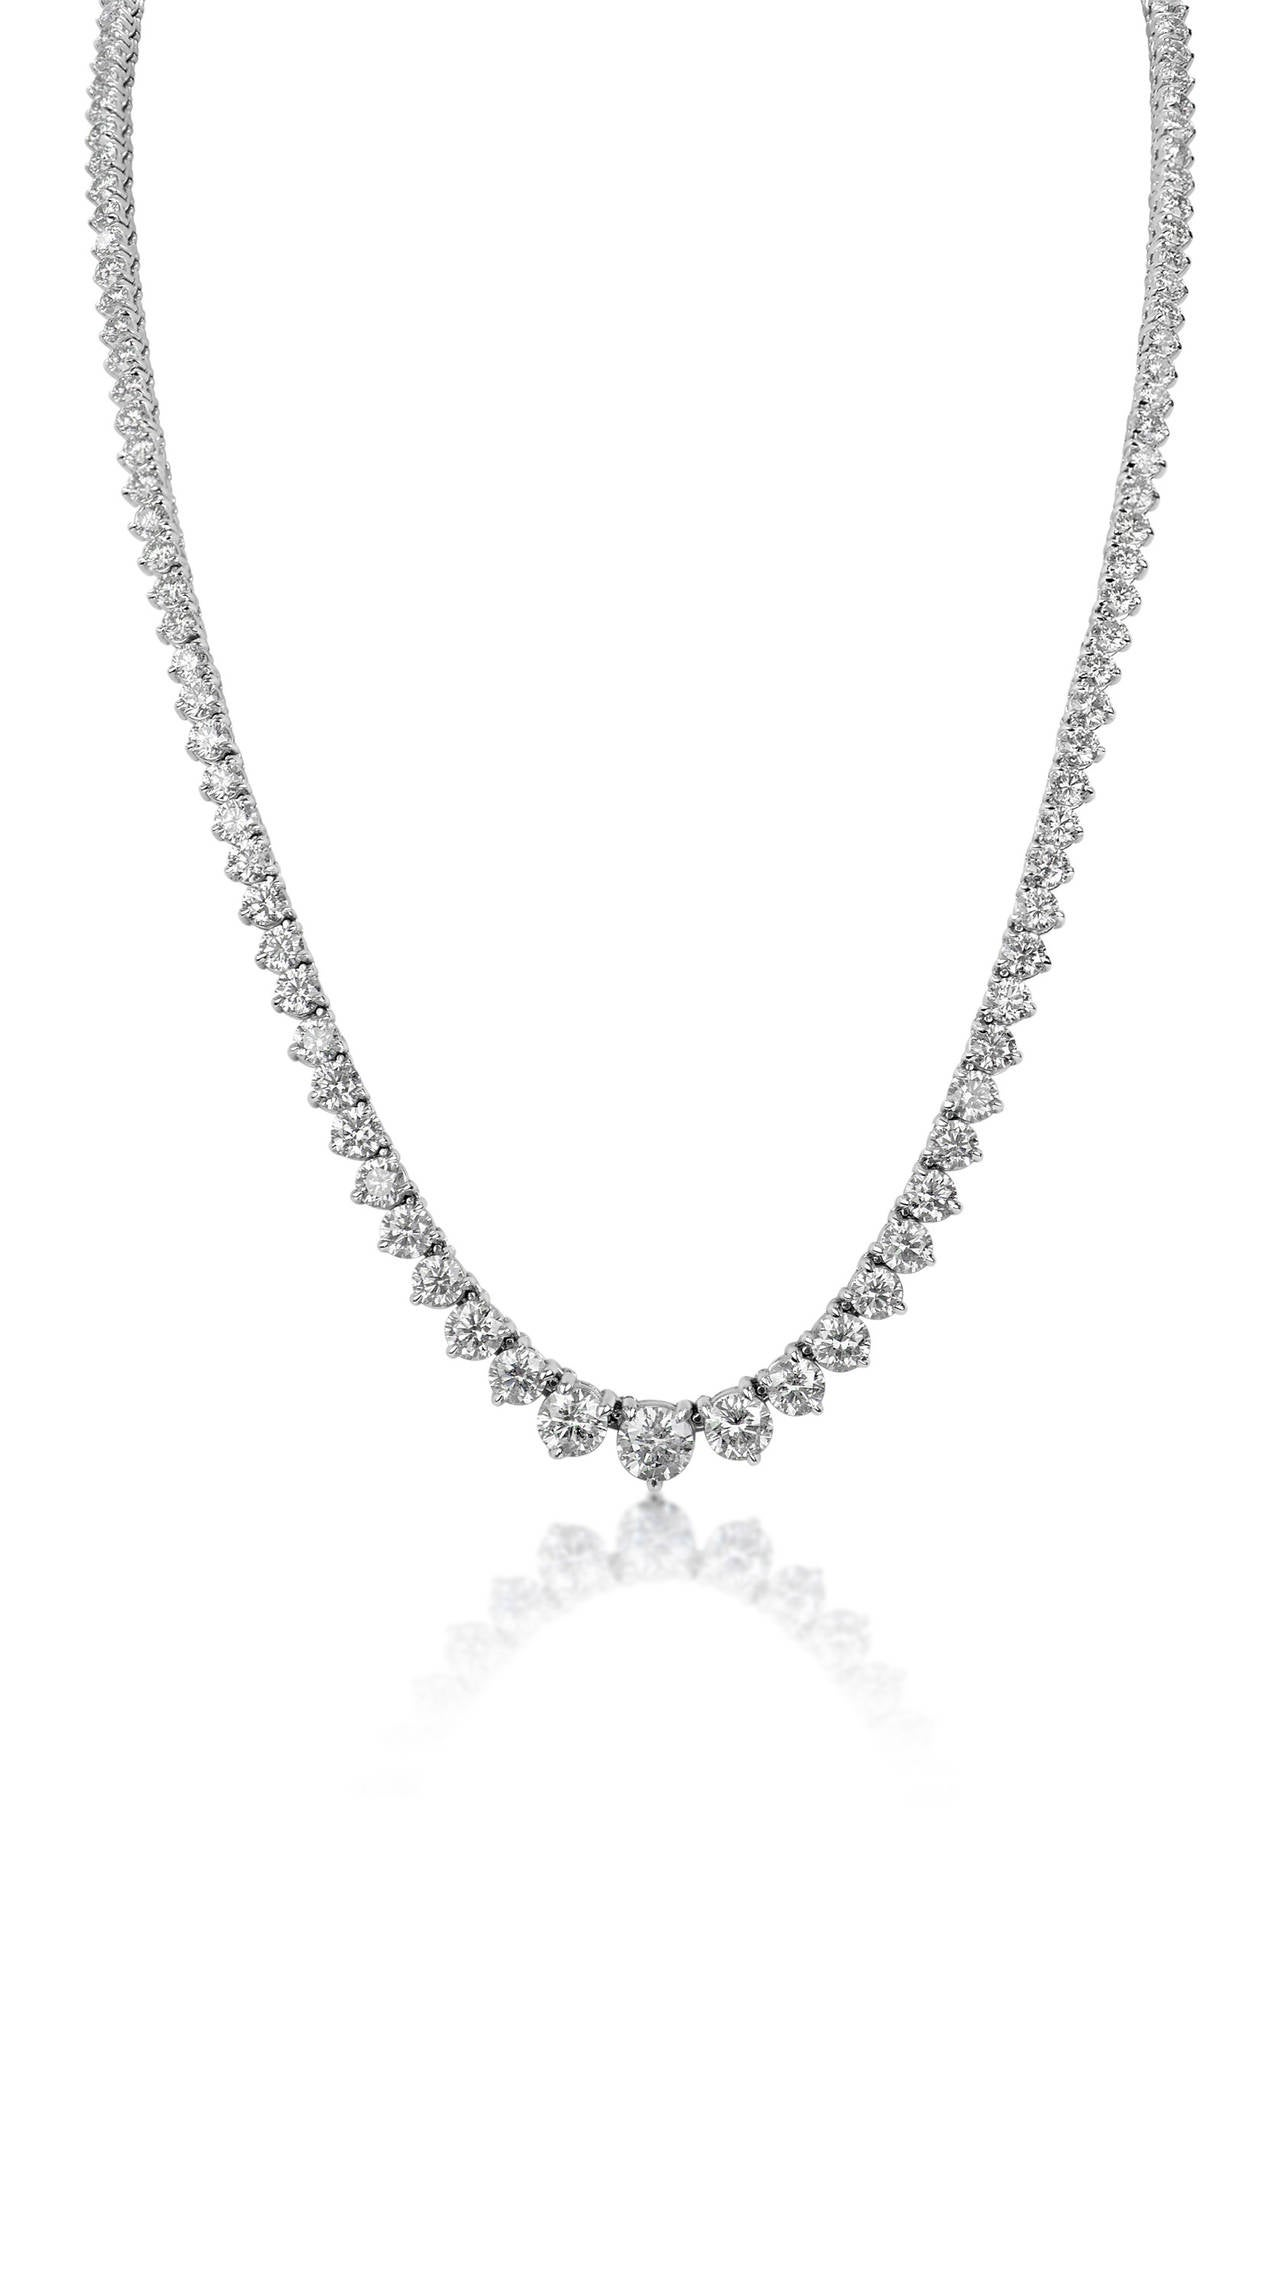 23.08 Carats GIA Cert Diamonds Graduated Riviere Necklace In As new Condition For Sale In New York, NY